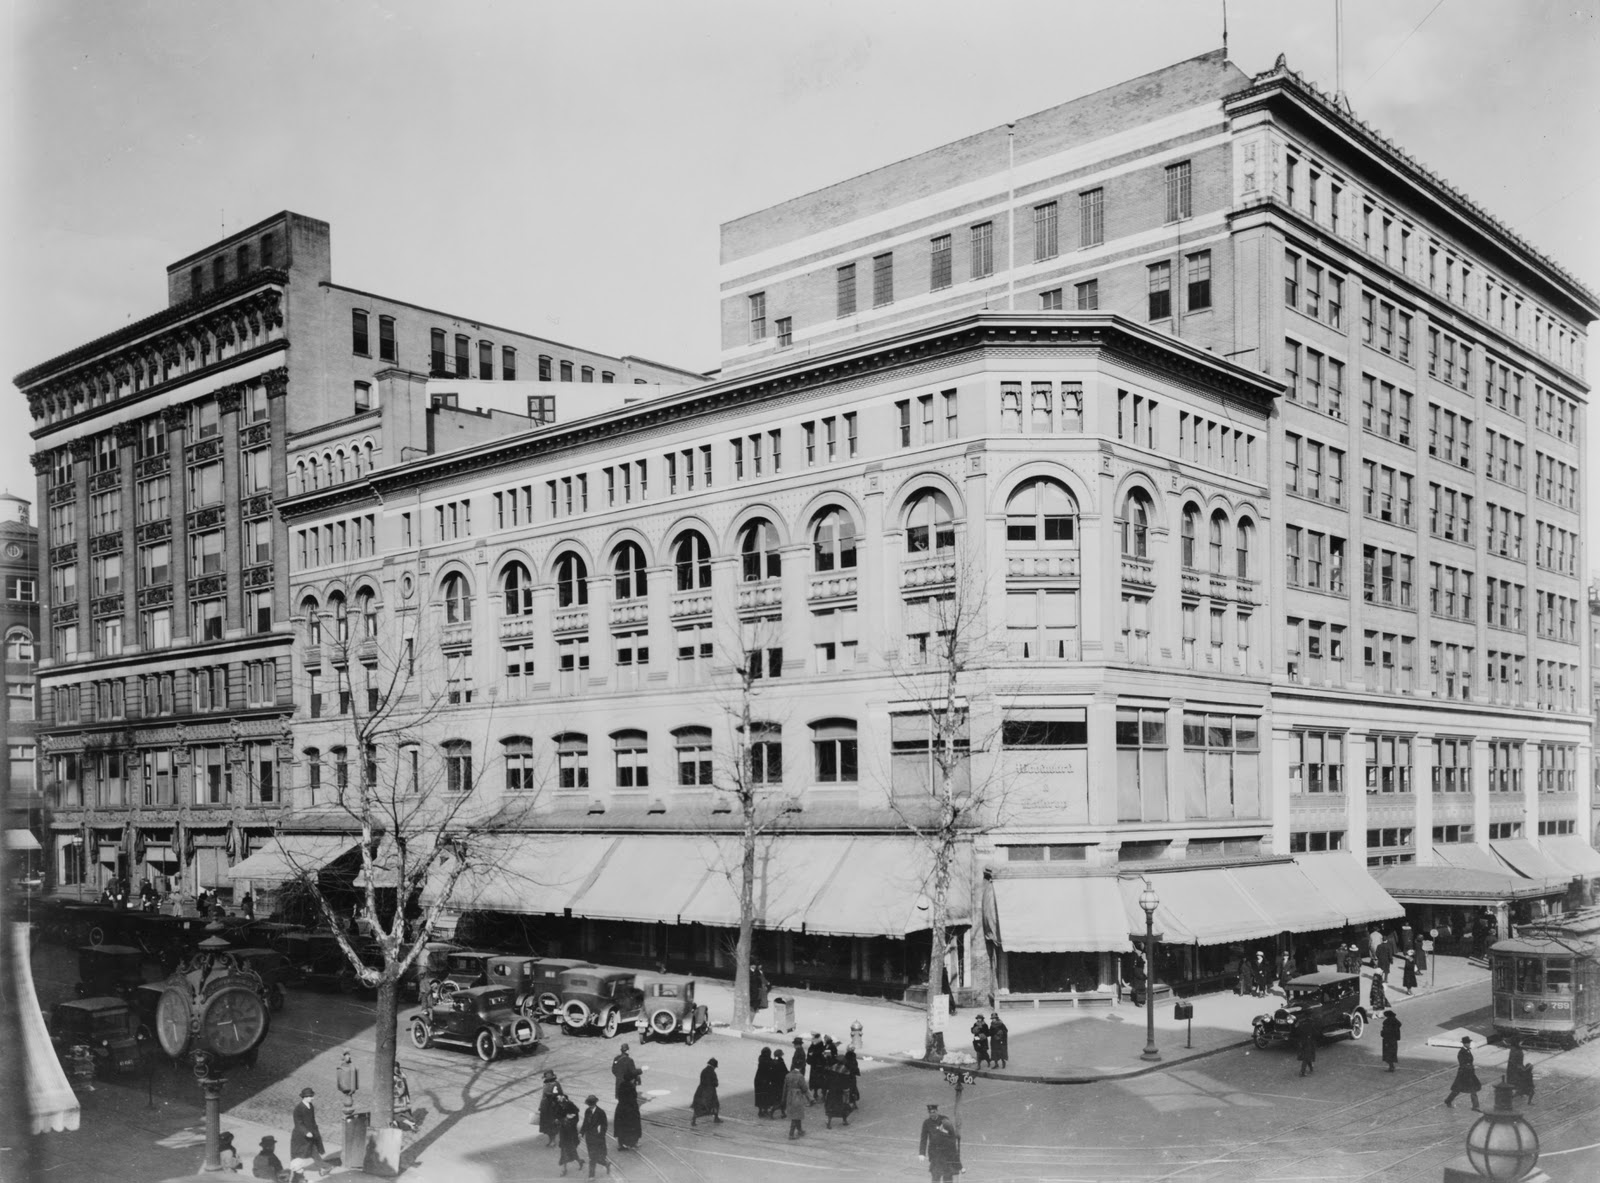 The Woodward & Lothrop department store in the early twentieth century, its original Carlisle Building at front. Photo courtesy of the Library of Congress.